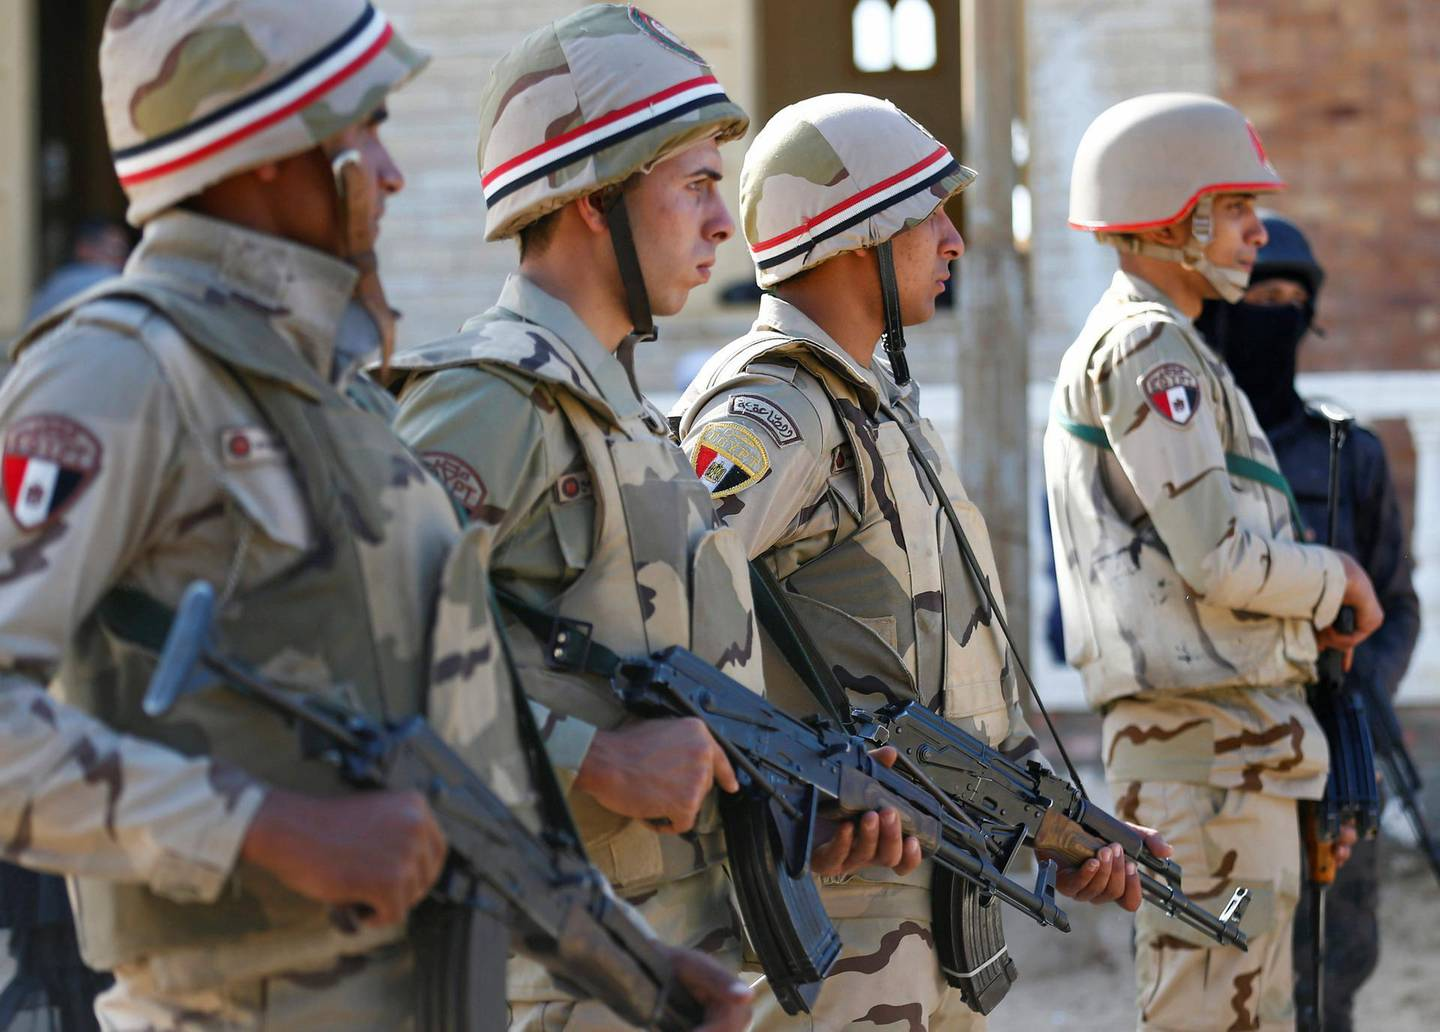 Military forces are seen in North Sinai, Egypt, December 1, 2017. Picture taken December 1, 2017. REUTERS/Mohamed Abd El Ghany